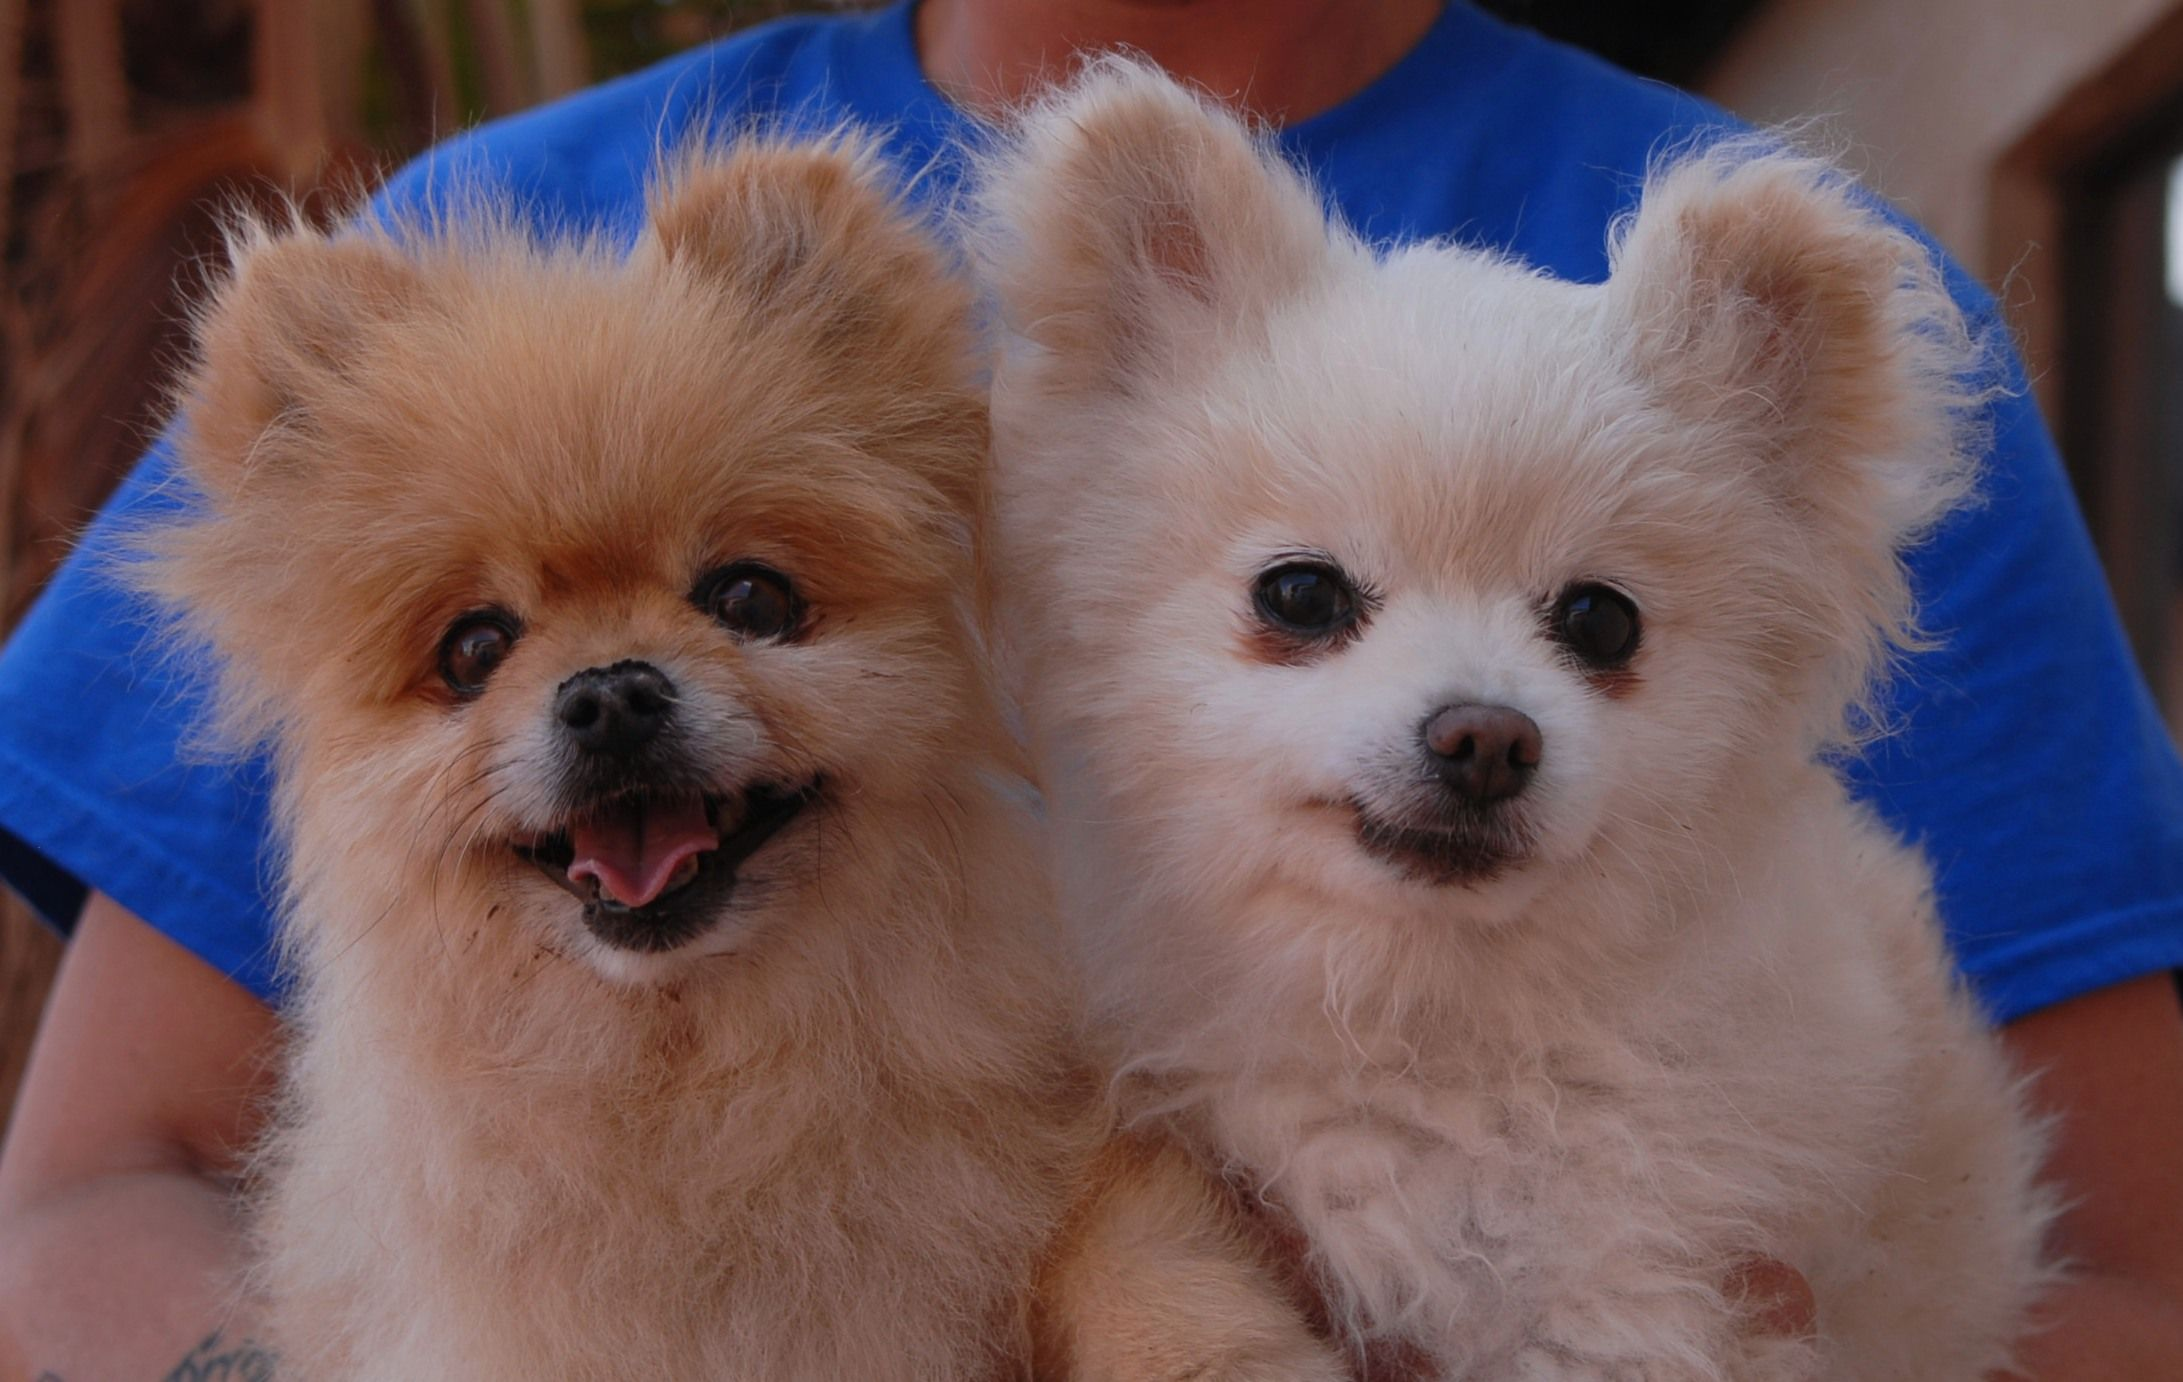 Cory & Snowball are tiny, precious older boys seeking a loving home where they can remain together forever. Their previous owner cited her age and deteriorating health as the reason for surrendering them. The boys are cute Pomeranians, 11 years of age, neutered, good with other dogs, and debuting for adoption today at Nevada SPCA (www.nevadaspca.org). Please help us find them a wonderful home.